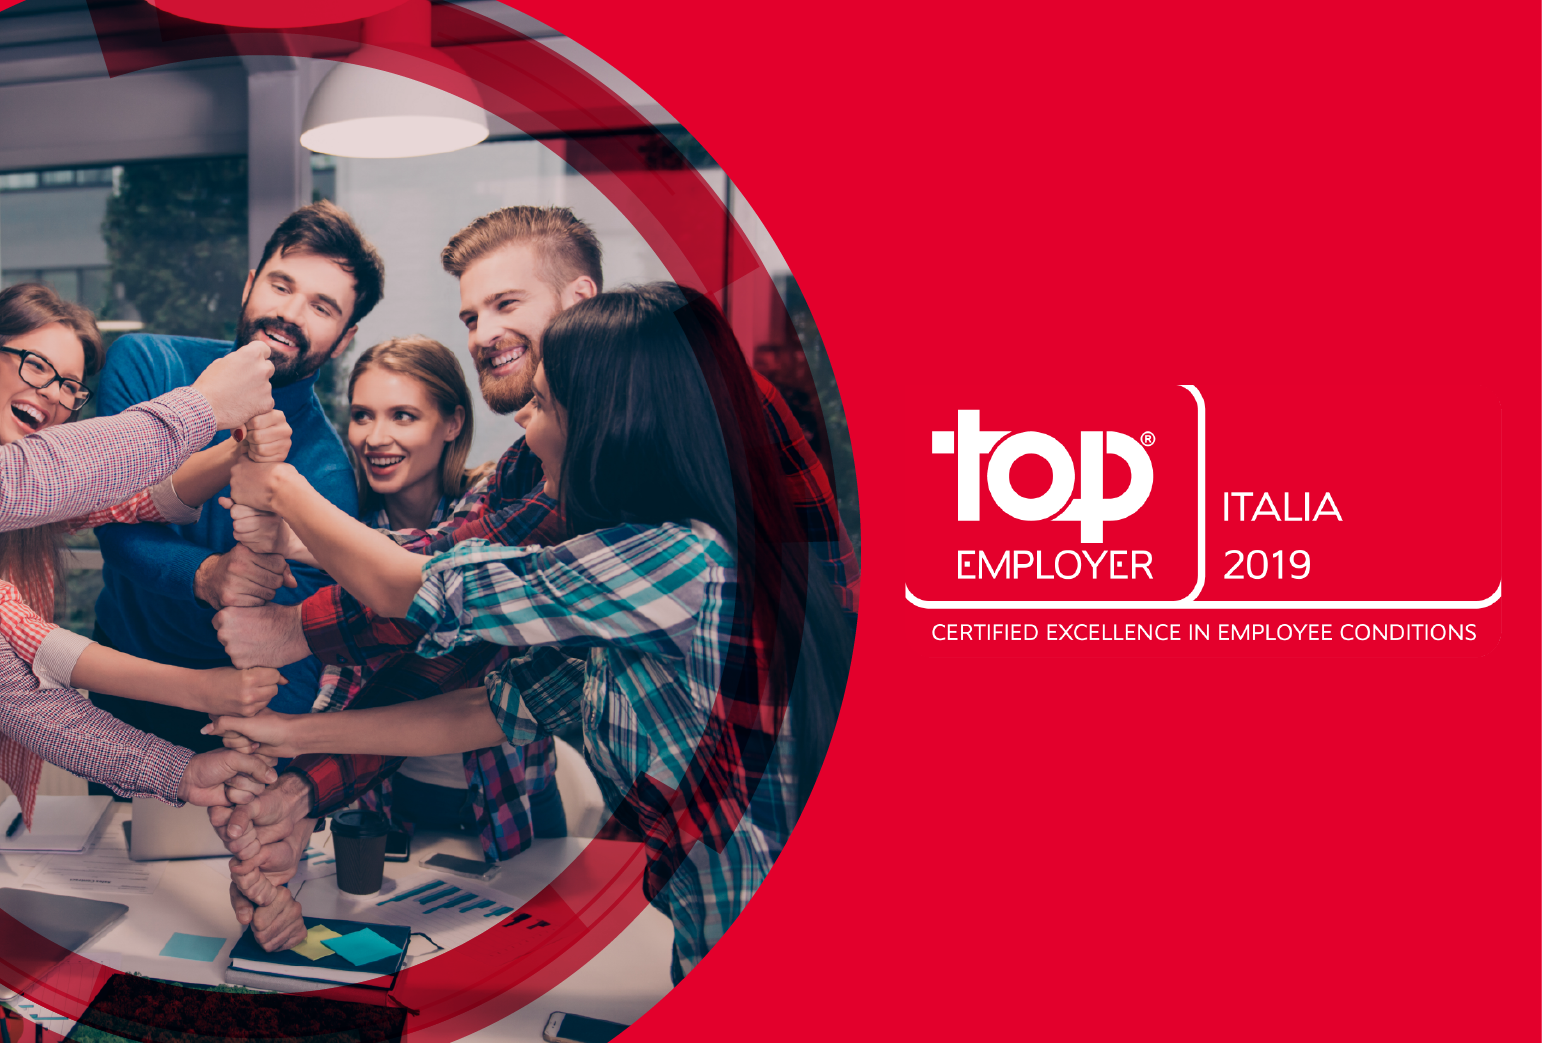 ALTEN Italia è ancora Top Employer per il 2019